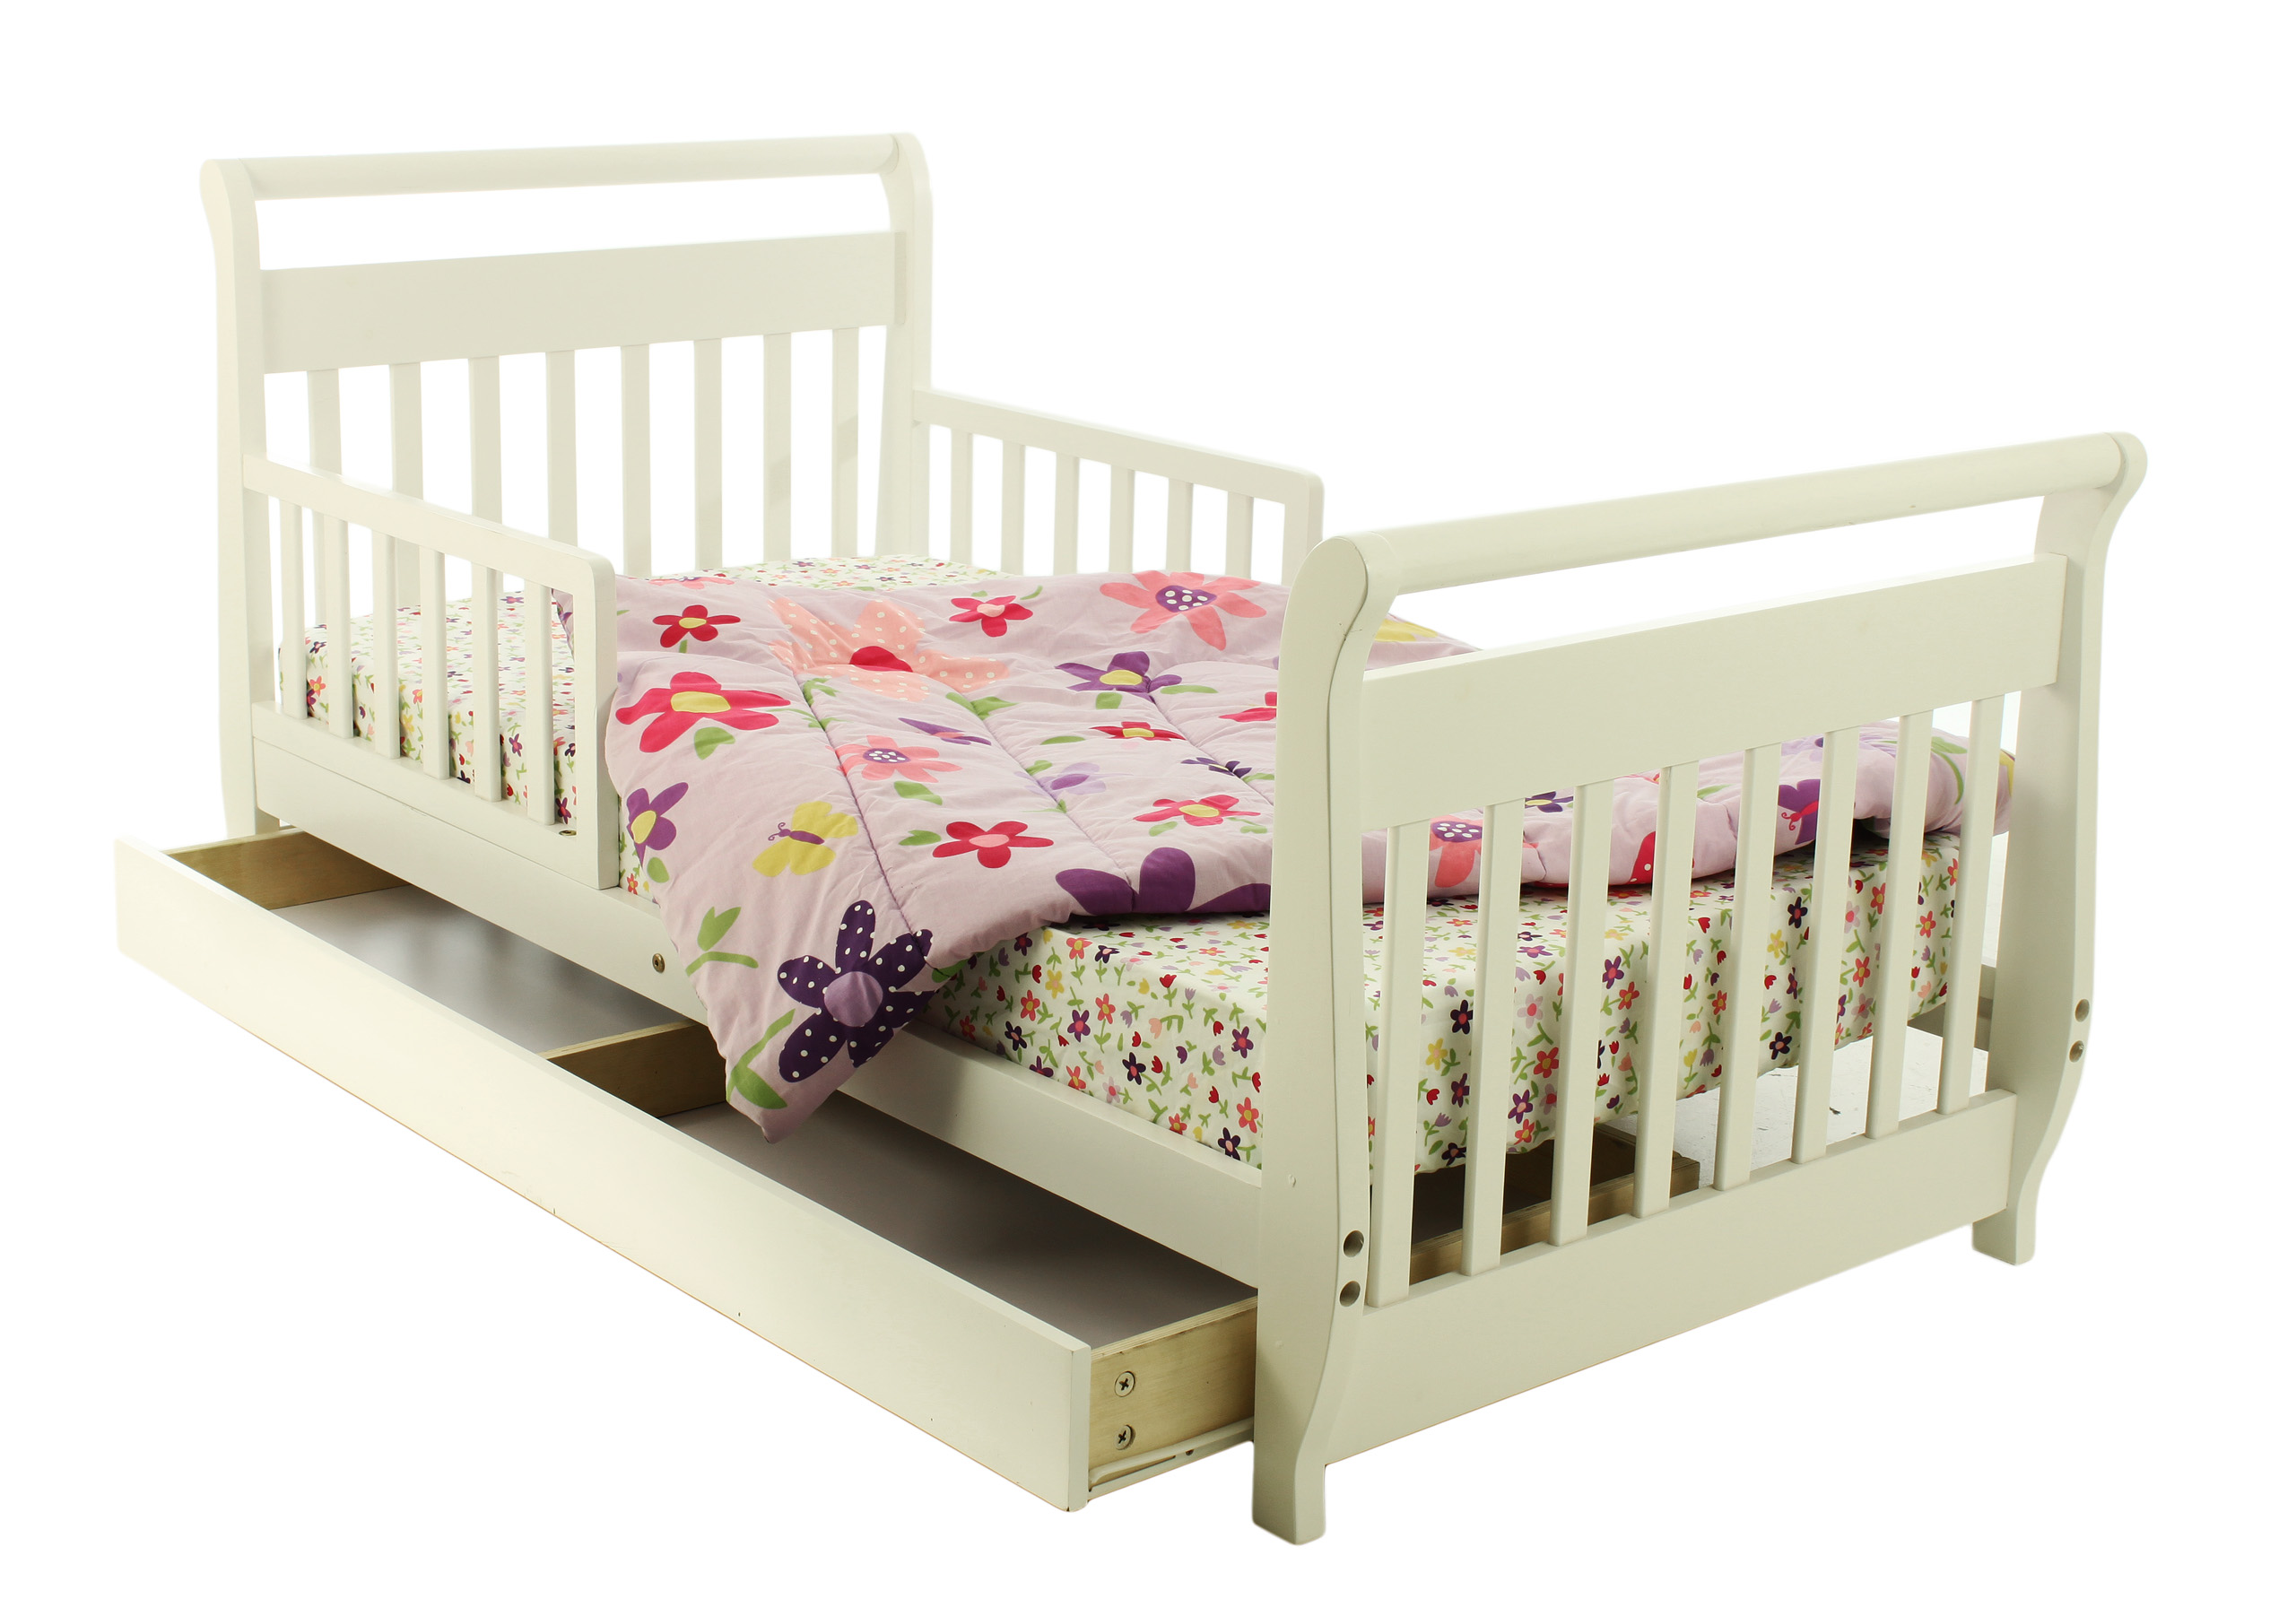 Wood Toddler Bed Plans Wooden PDF Expandable Dining Room